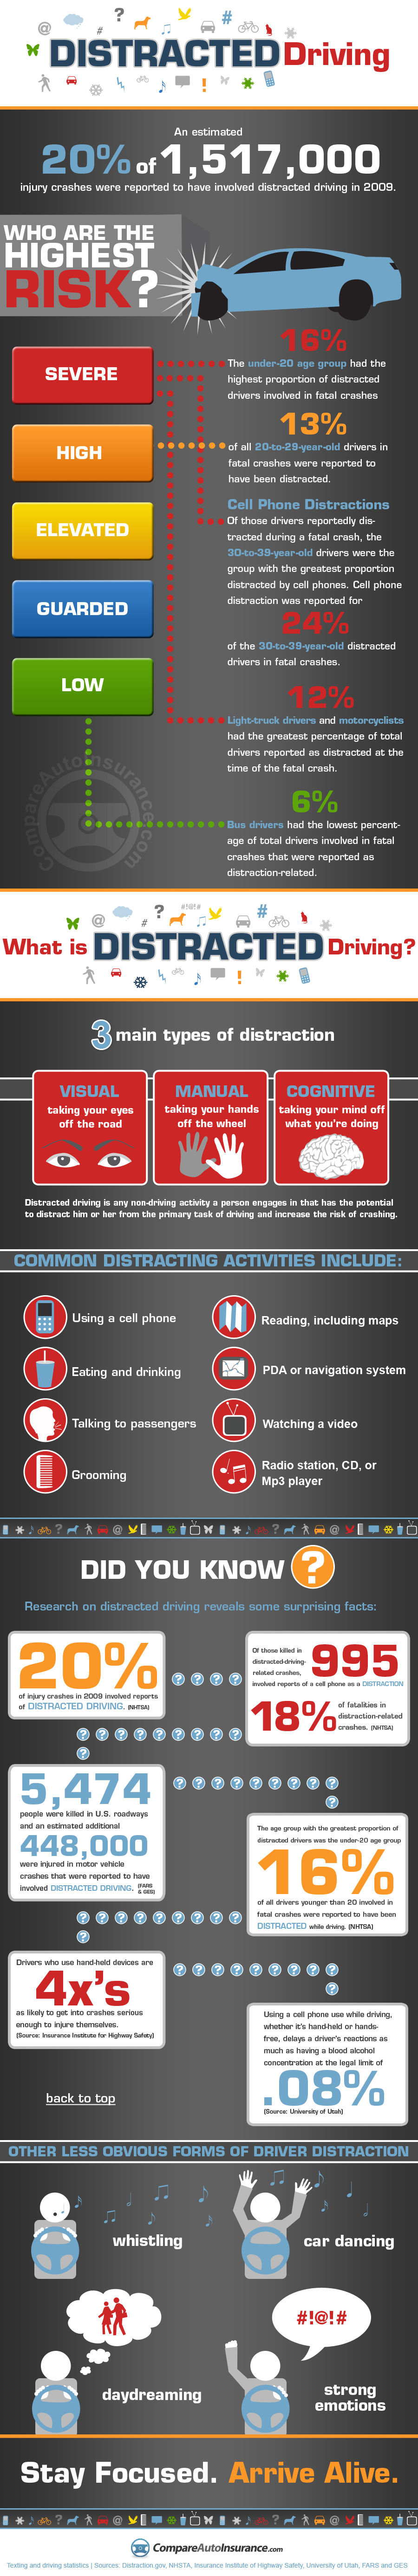 Three Types of Driving Distractions